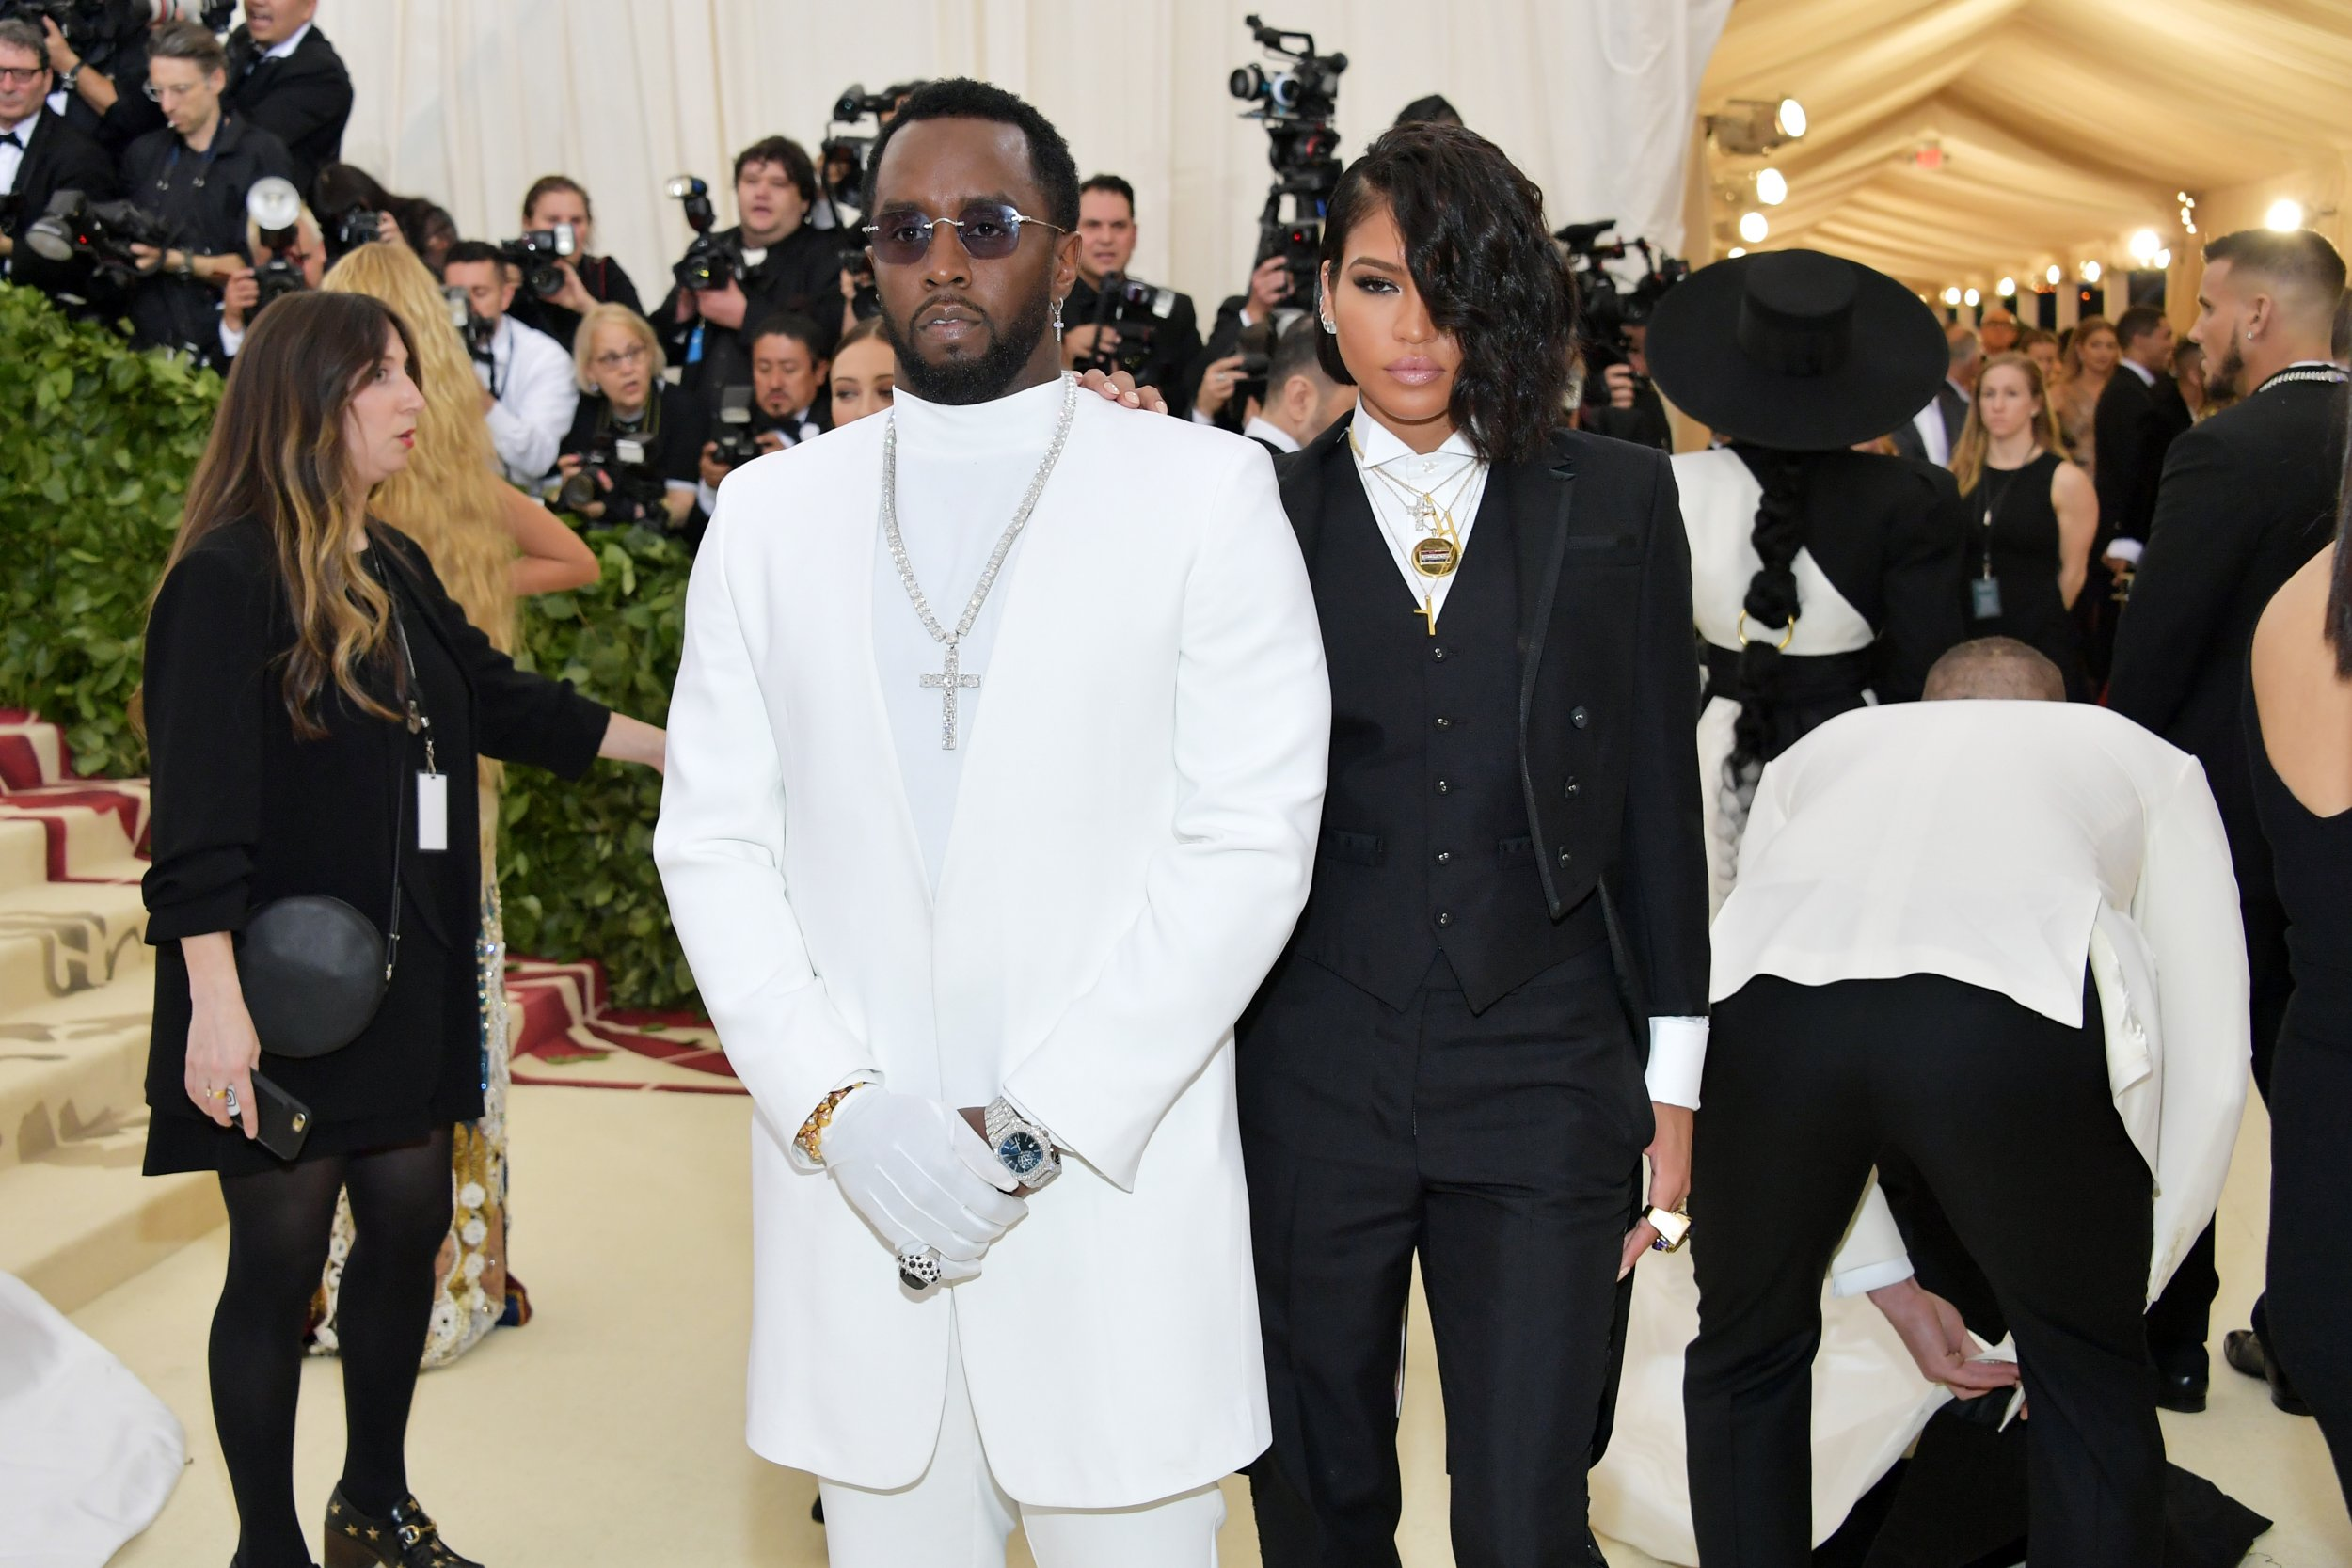 Why Did P Diddy and Cassie Break Up? Rep Confirms Split